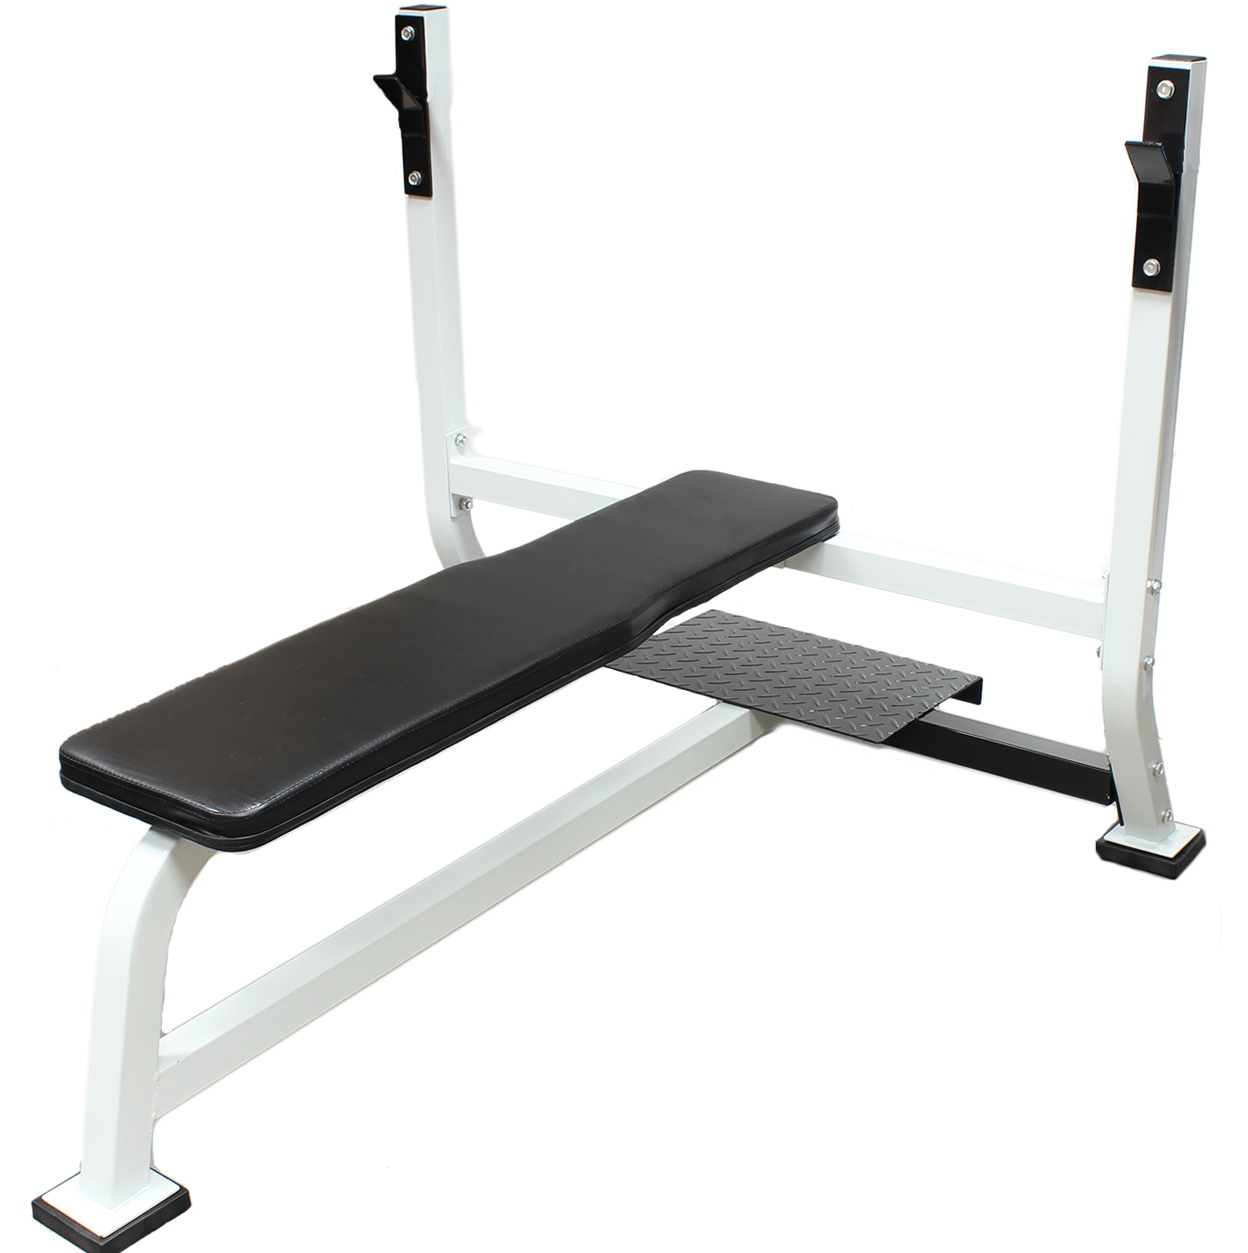 Best weight bench for home gym design ideas